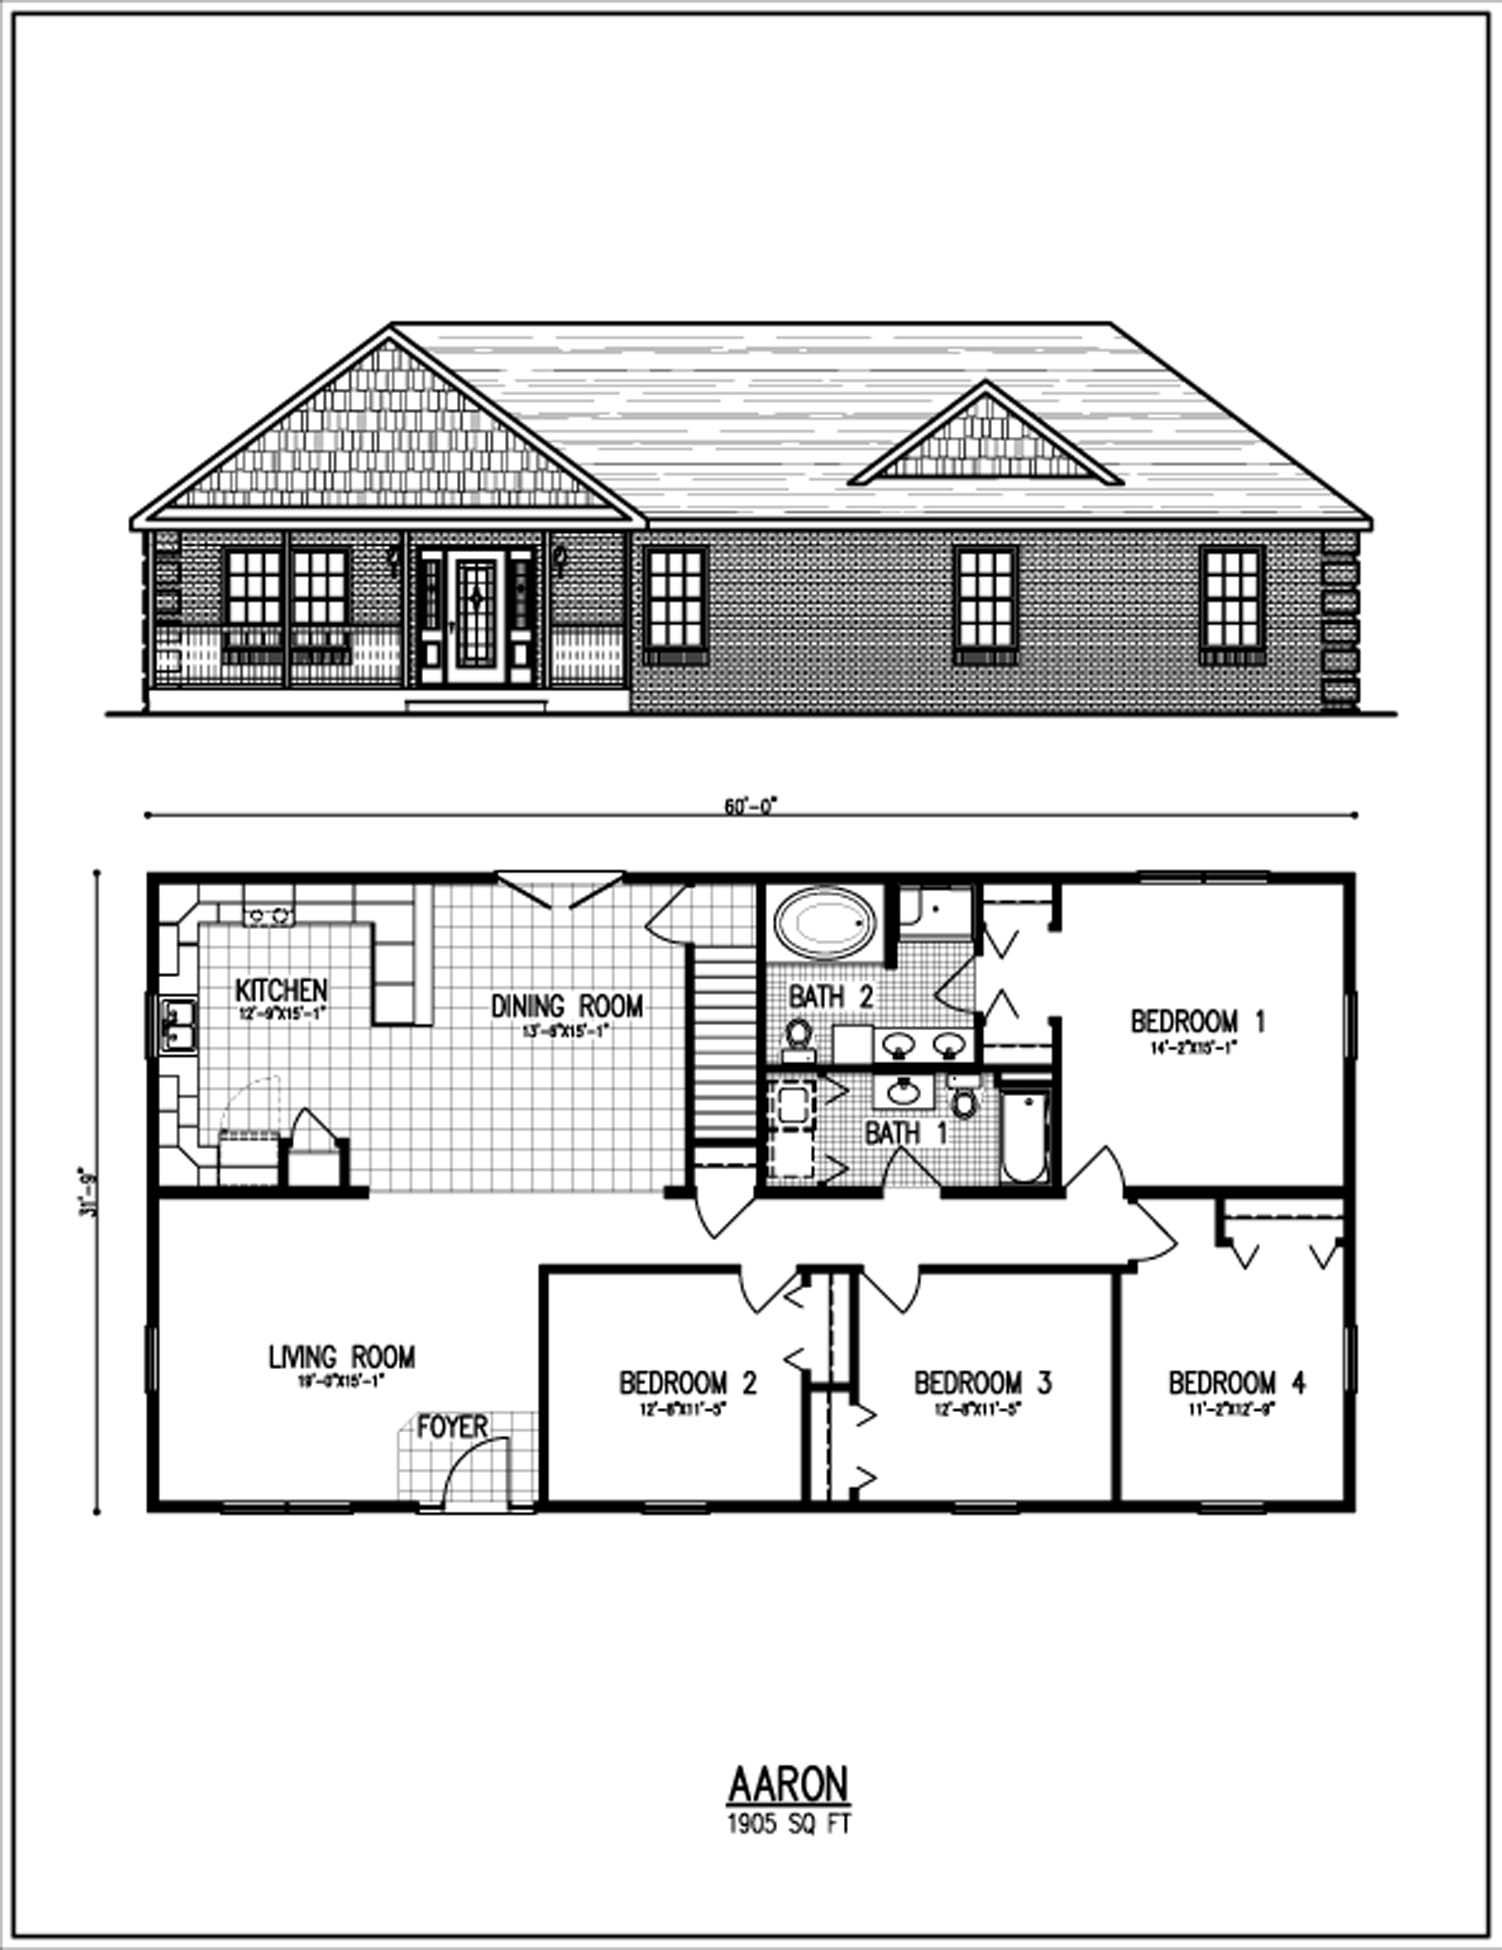 All american homes floorplan center staffordcape for American home builders floor plans